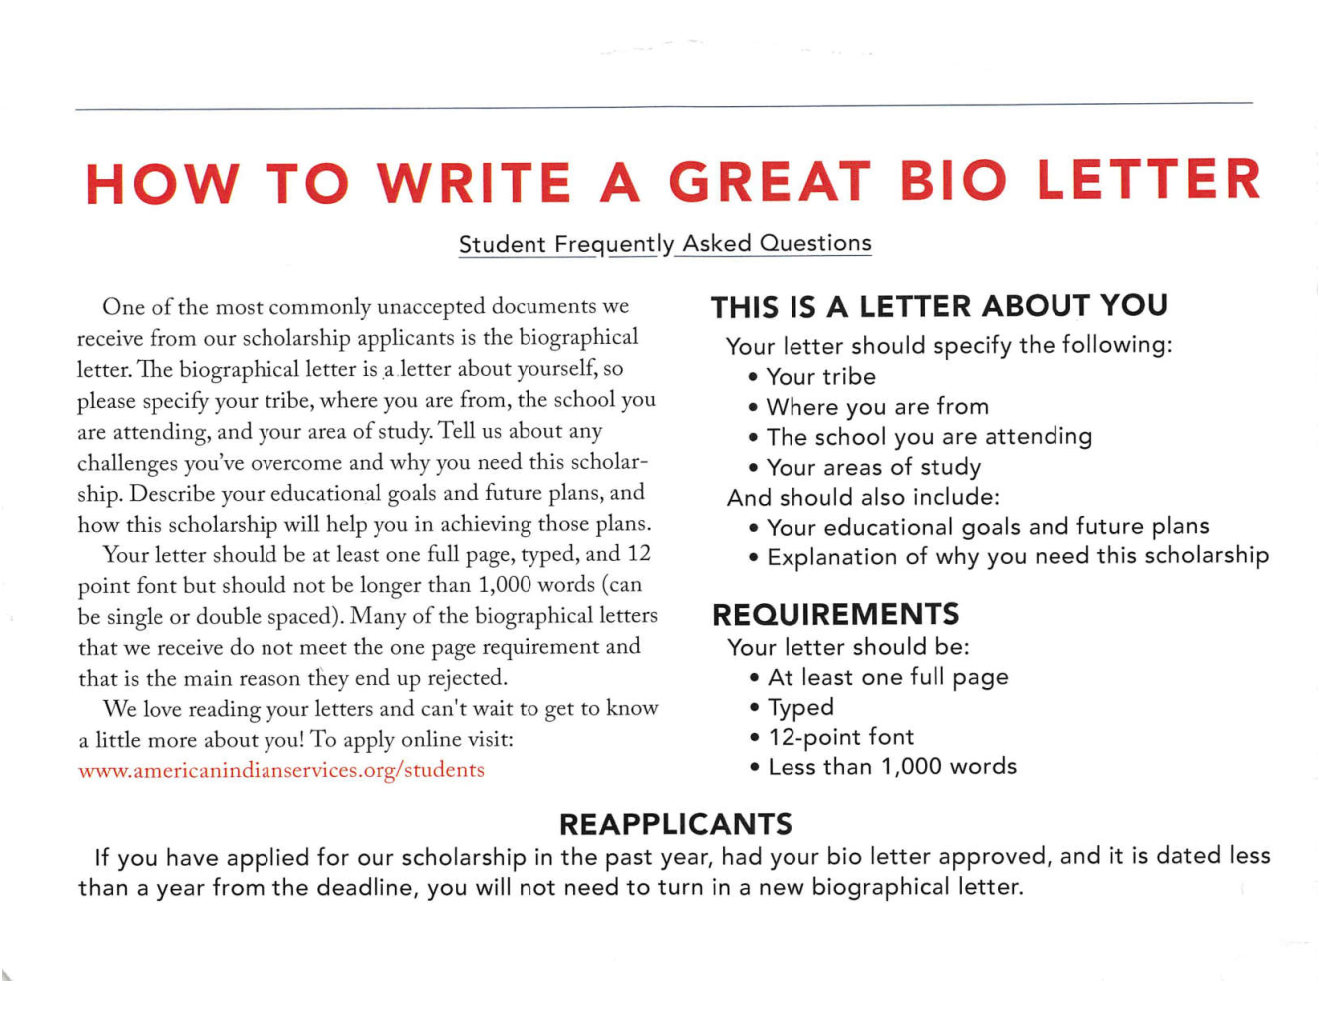 20190913b How to Write a Great Bio Letter